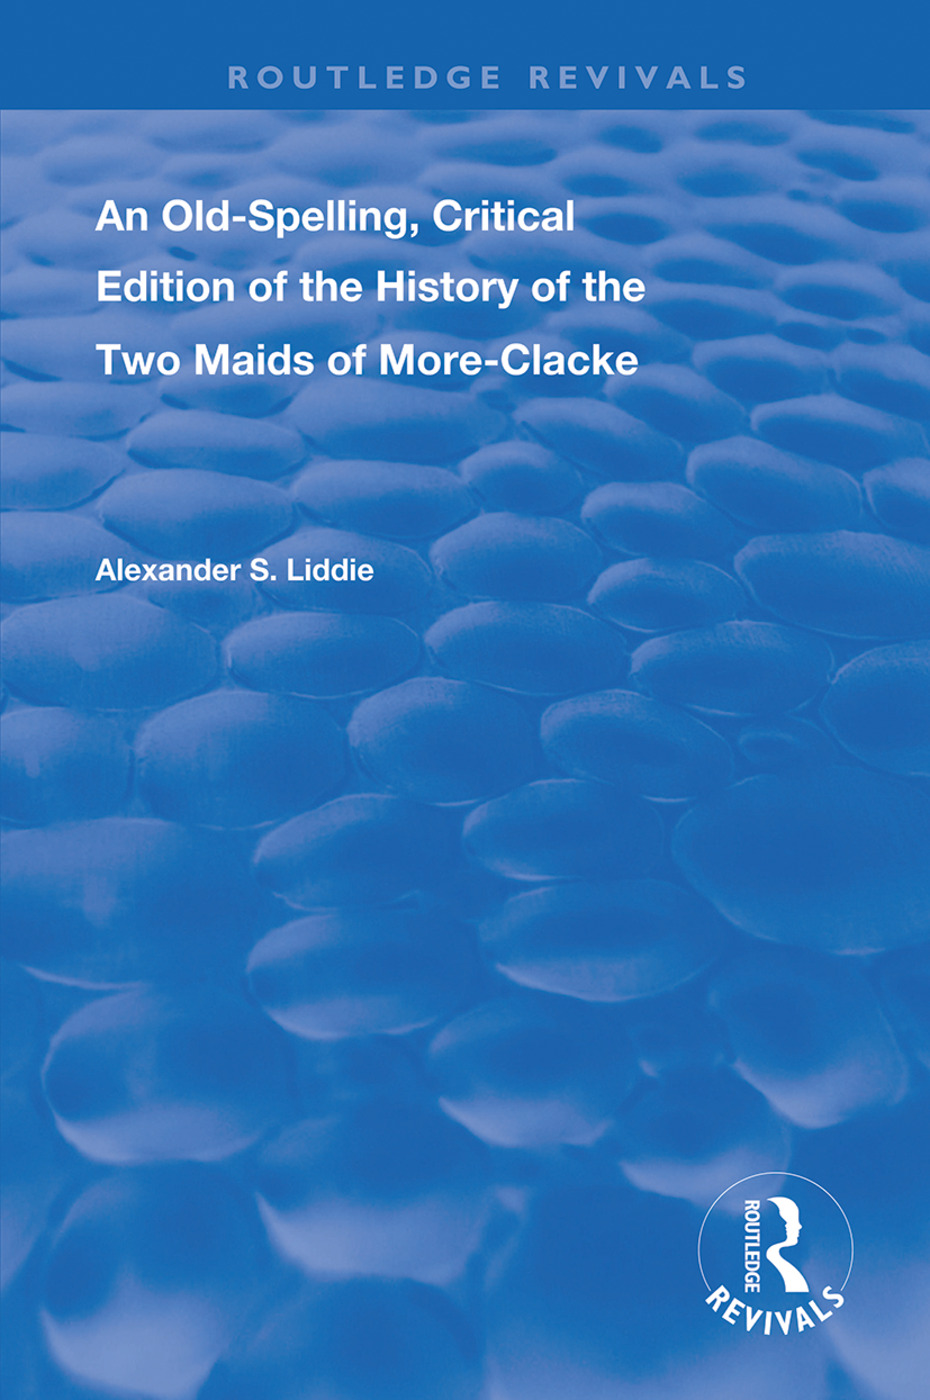 An Old-Spelling, Critical Edition of The History of the Two Maids of More-Clacke: 1st Edition (Paperback) book cover